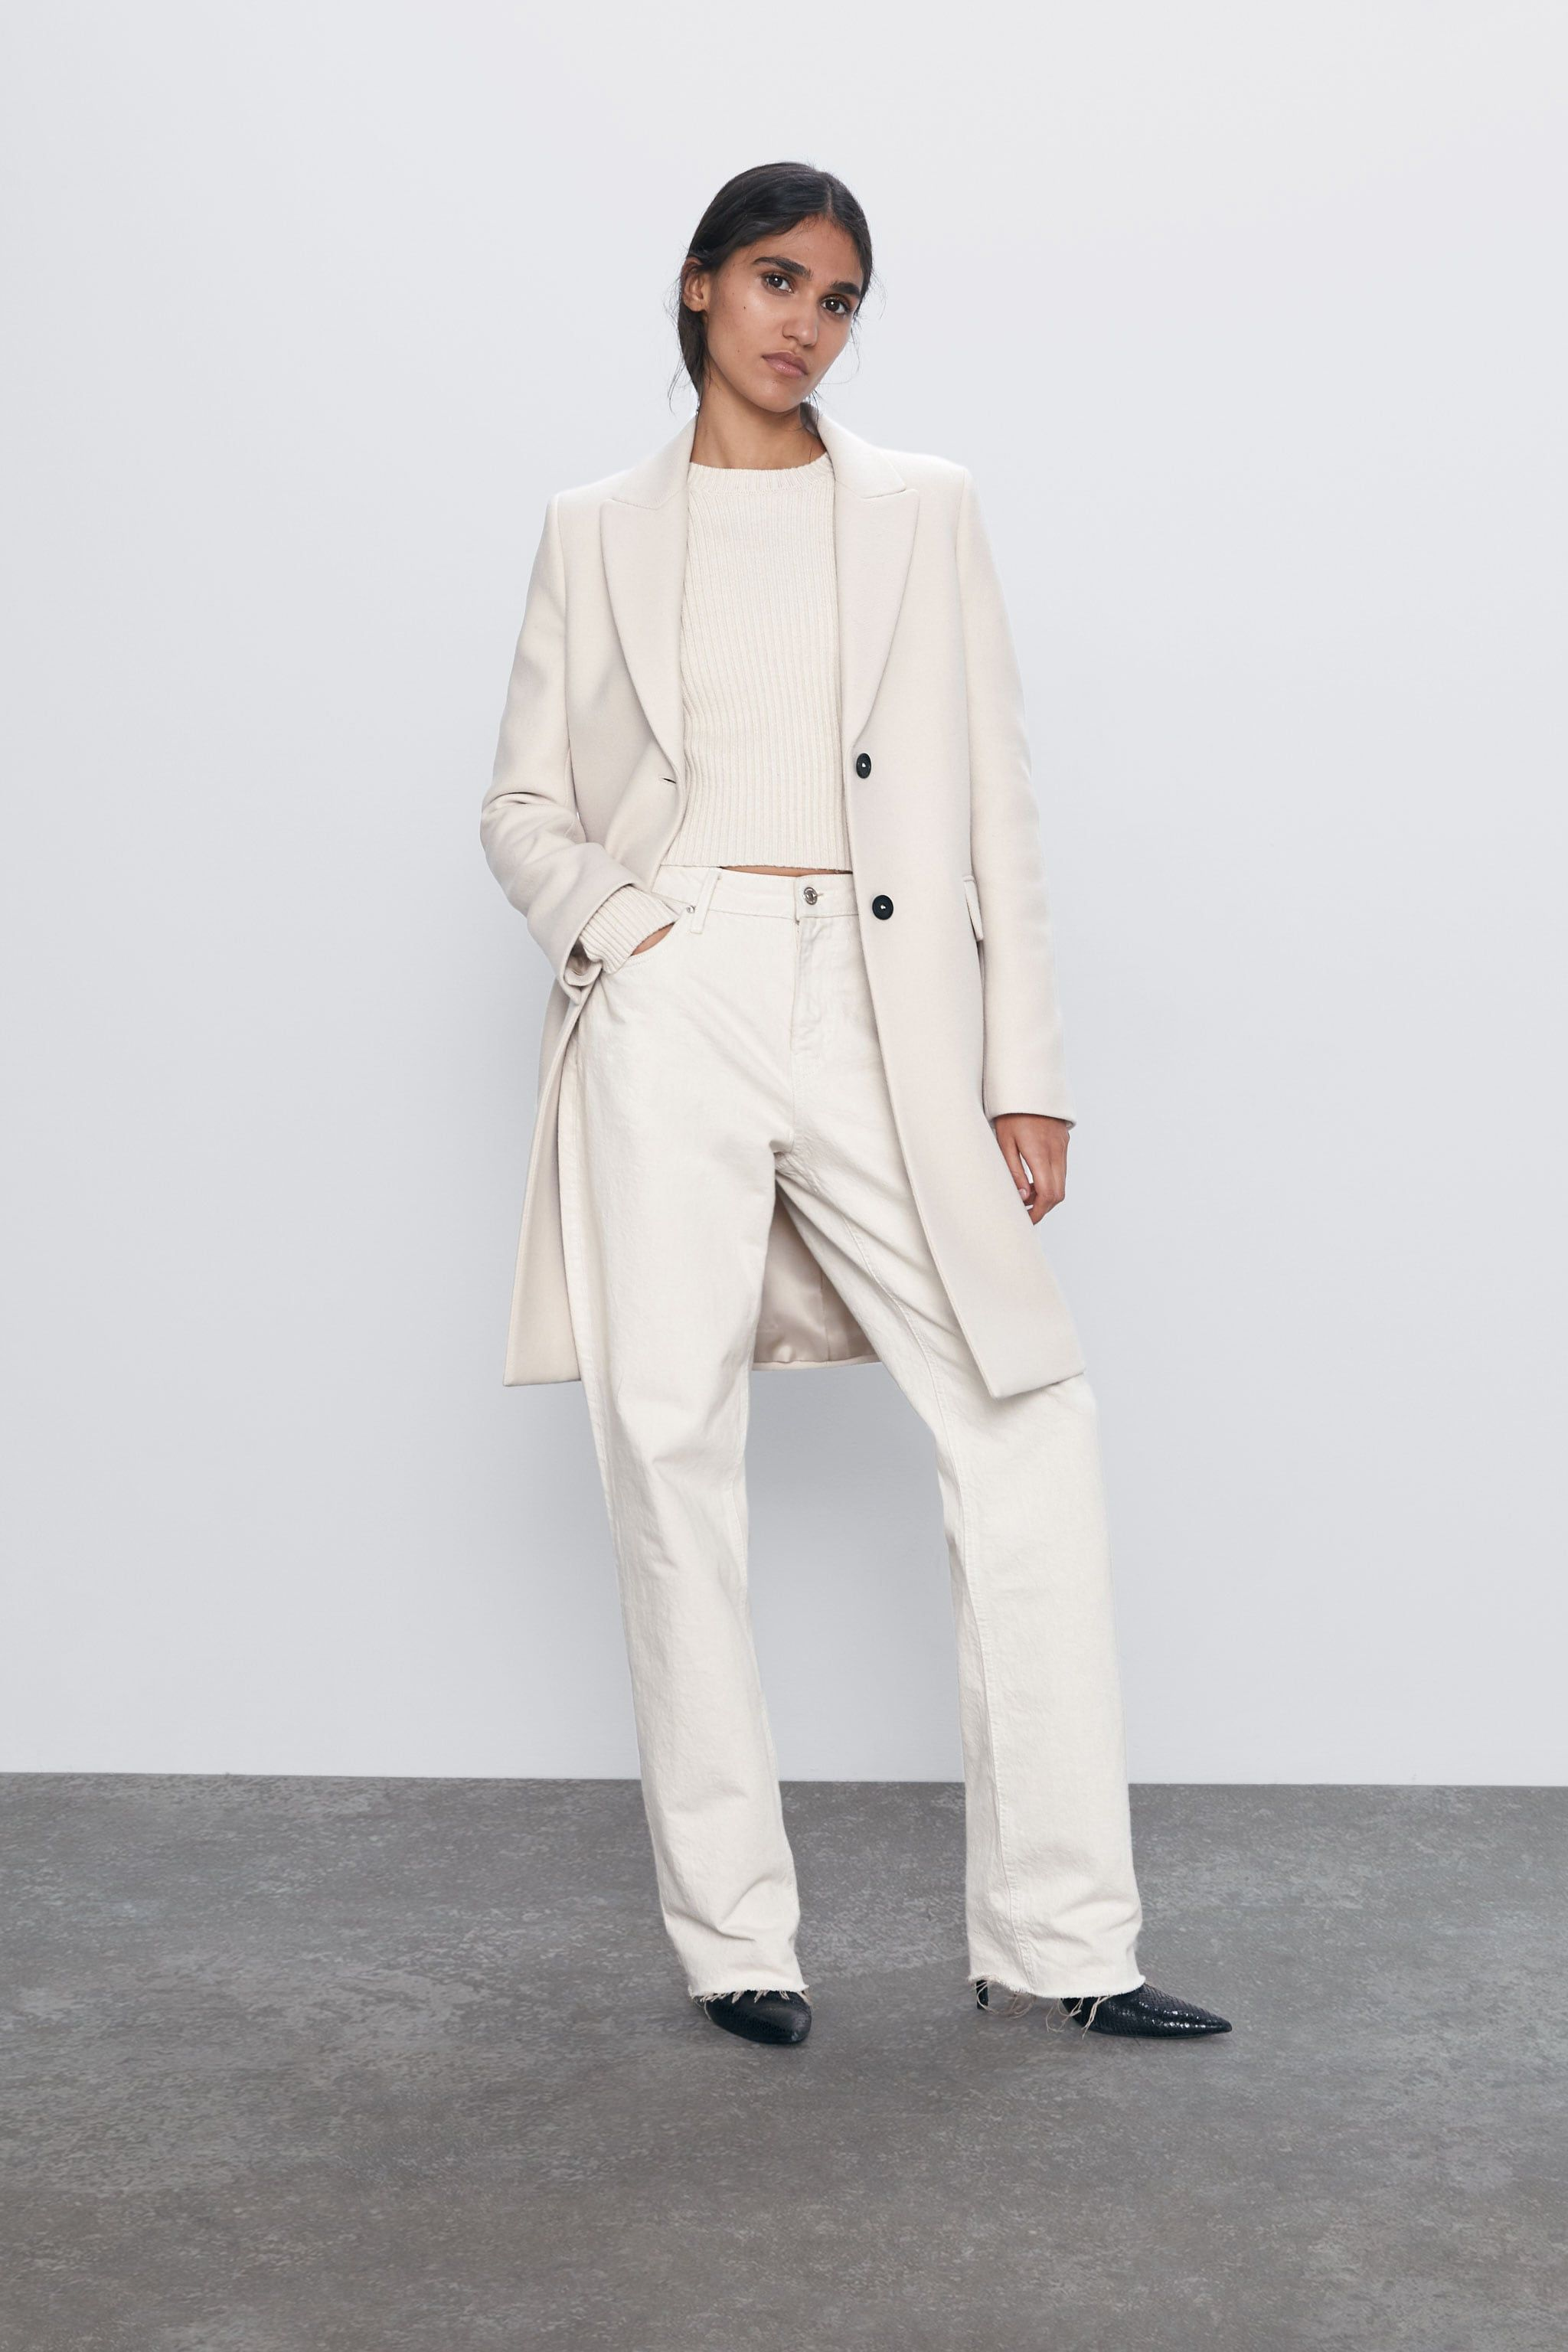 20 Zara Outfits ThatWill Earn You Instant Compliments